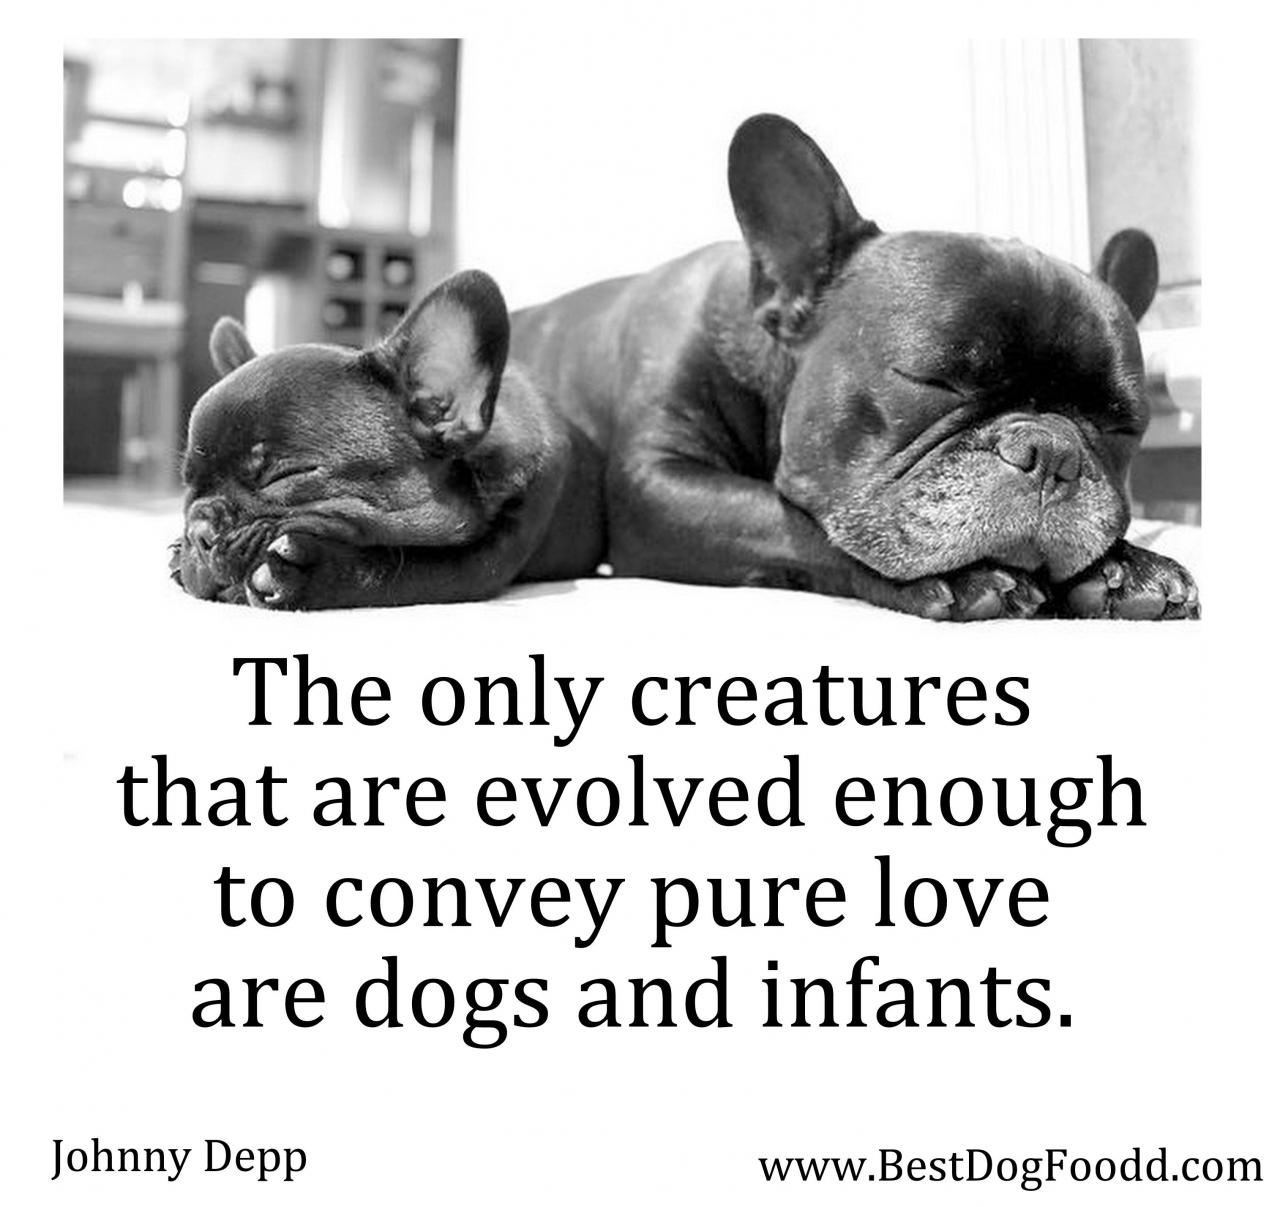 The Only Creatures That Are Evolved Enough To Convey Pure Love Are Dogs And Infants